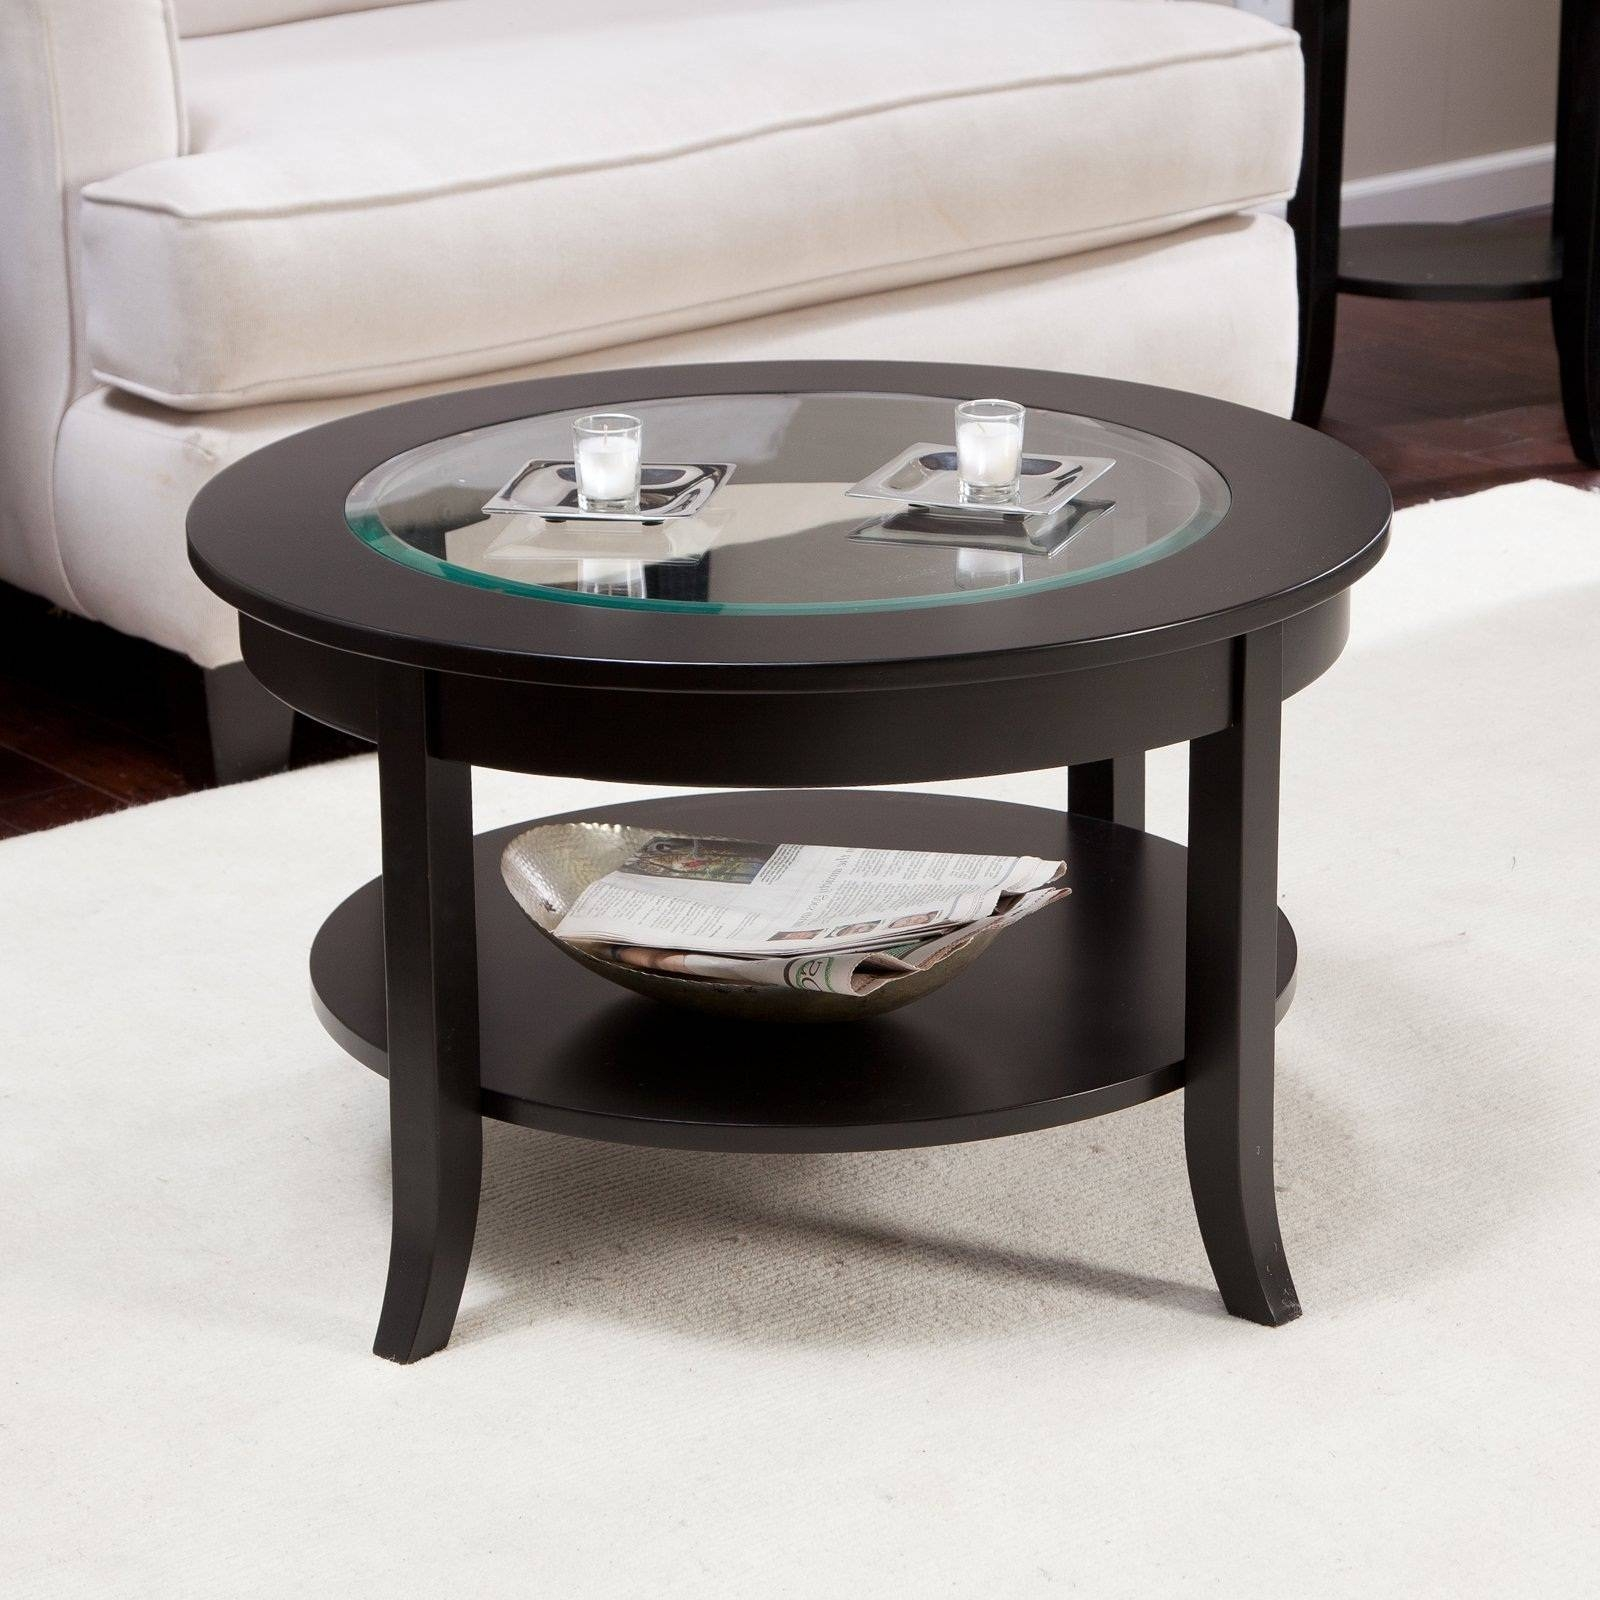 Espresso Solid Wood Coffee Table | Coffee Tables Decoration intended for Espresso Coffee Tables (Image 14 of 30)